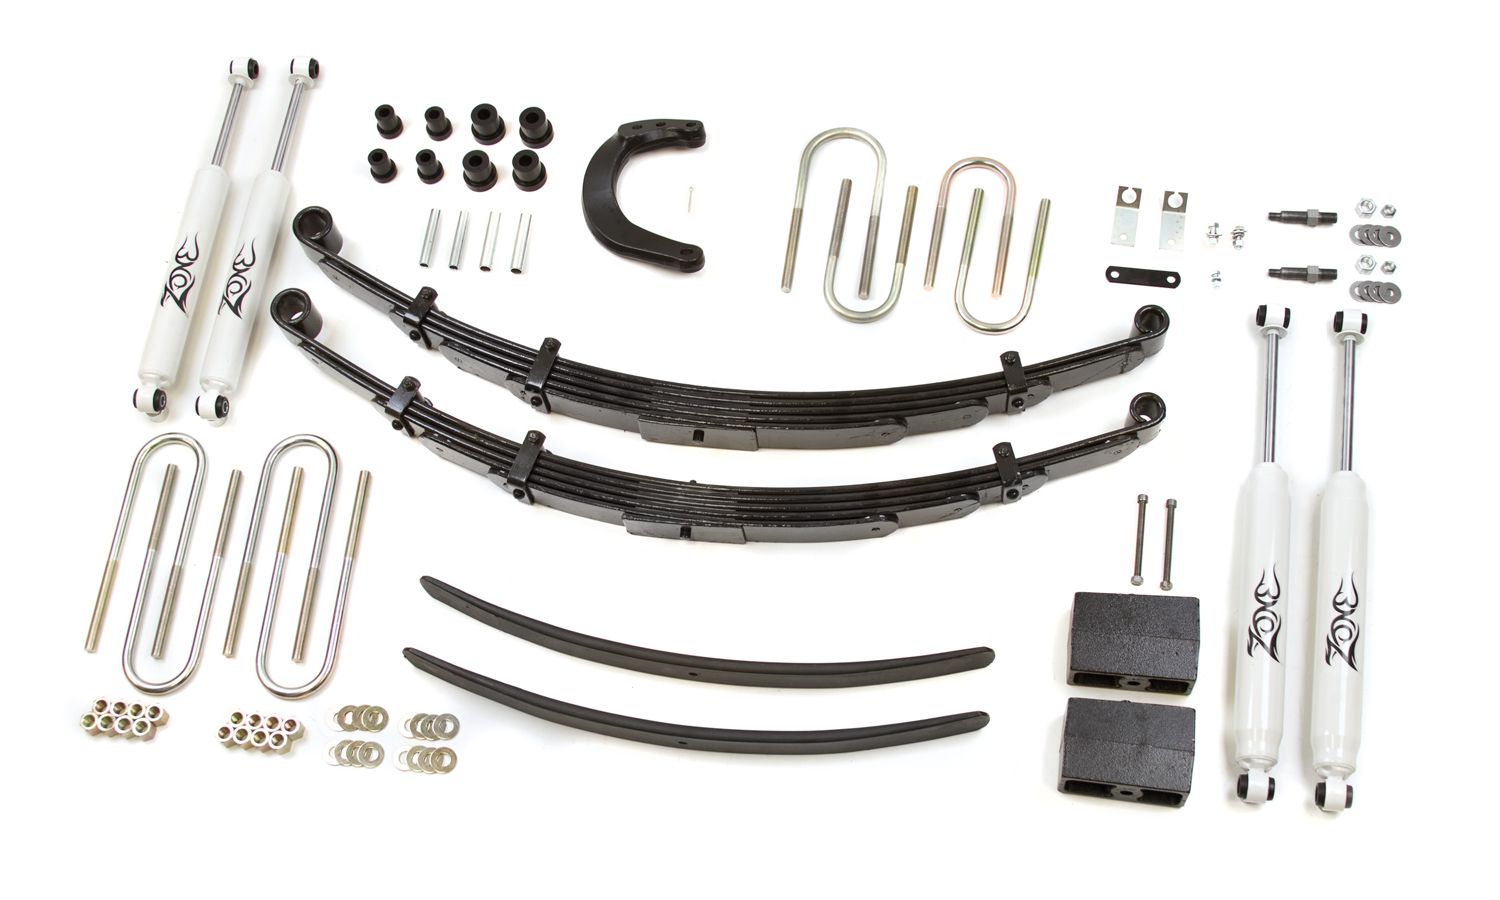 hight resolution of zone offroad 6 leaf springs lift kit 1973 1987 chevy gmc pickup